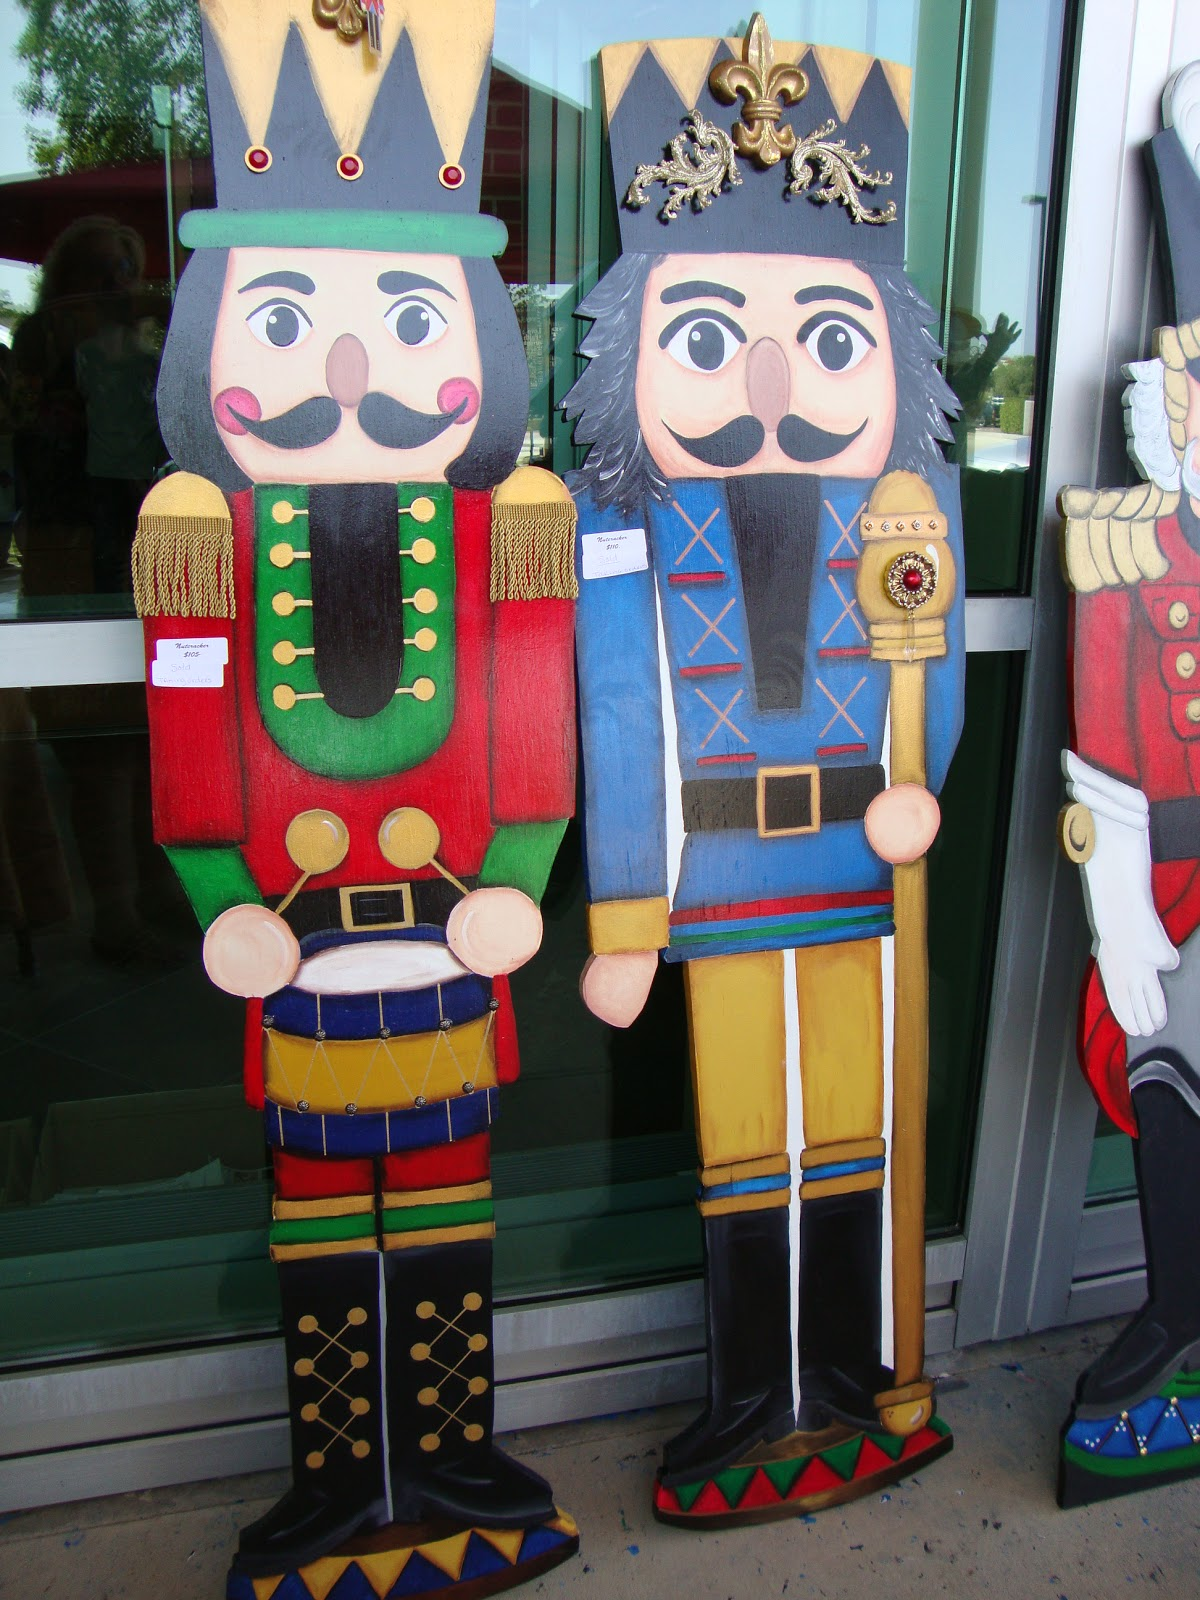 ... Gr8scraps Holiday Show Announcement For Nutcracker Outdoor Christmas  Decorations ...